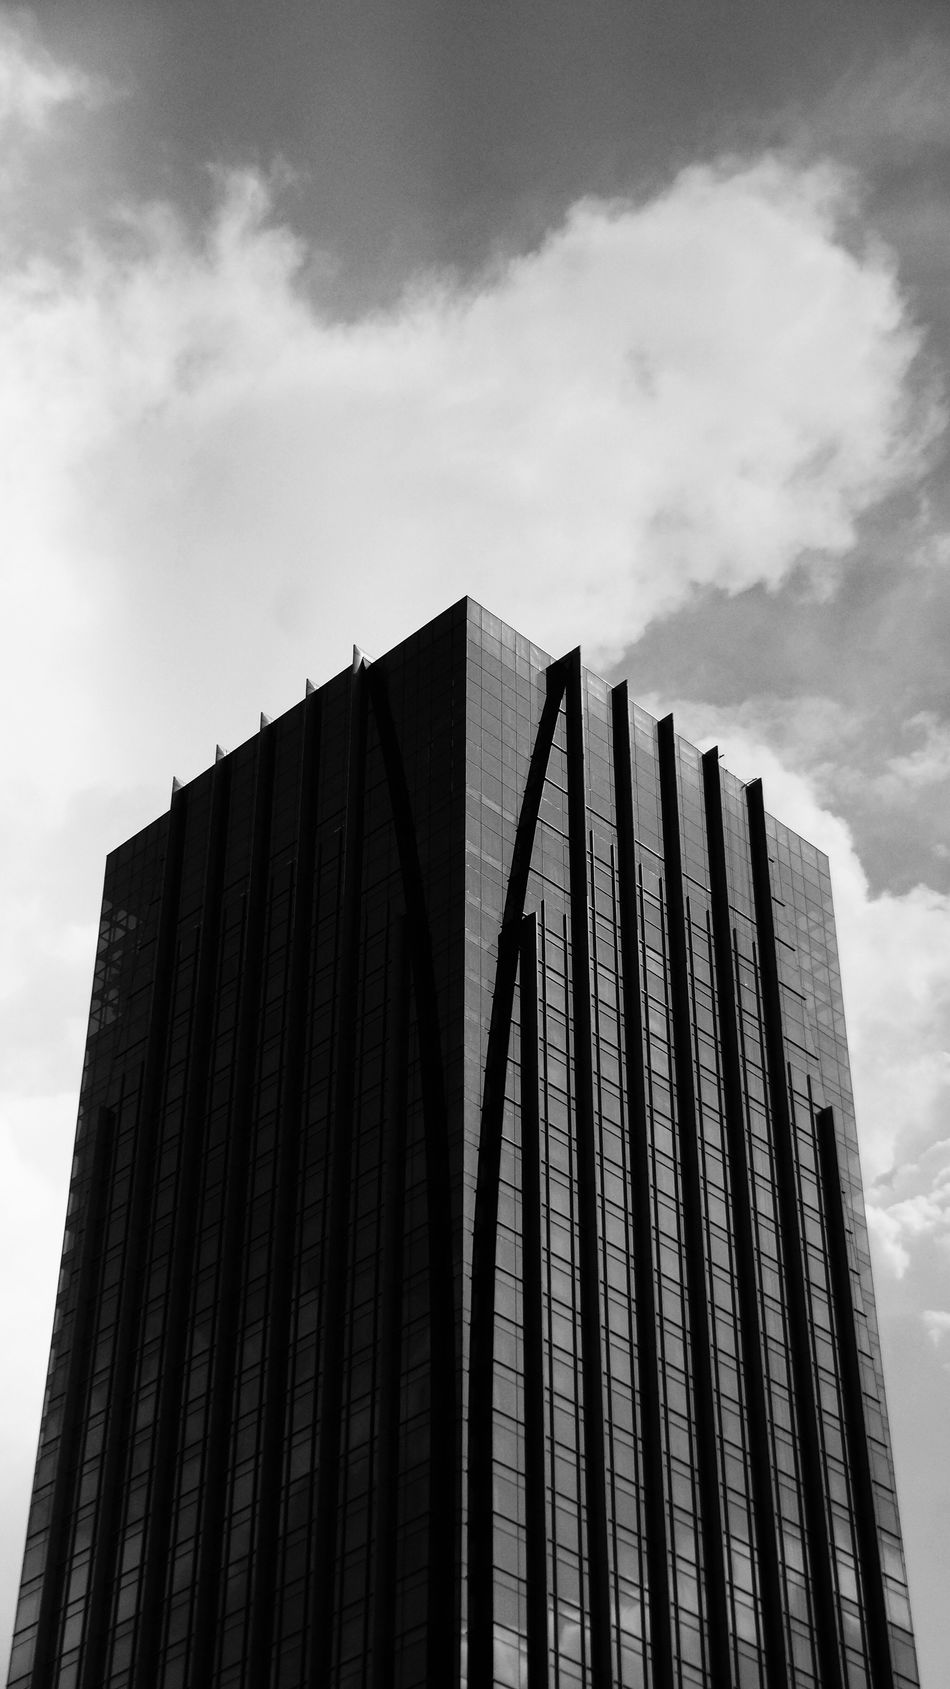 Low Angle View Architecture Built Structure Sky Building Exterior Outdoors Day No People Modern City